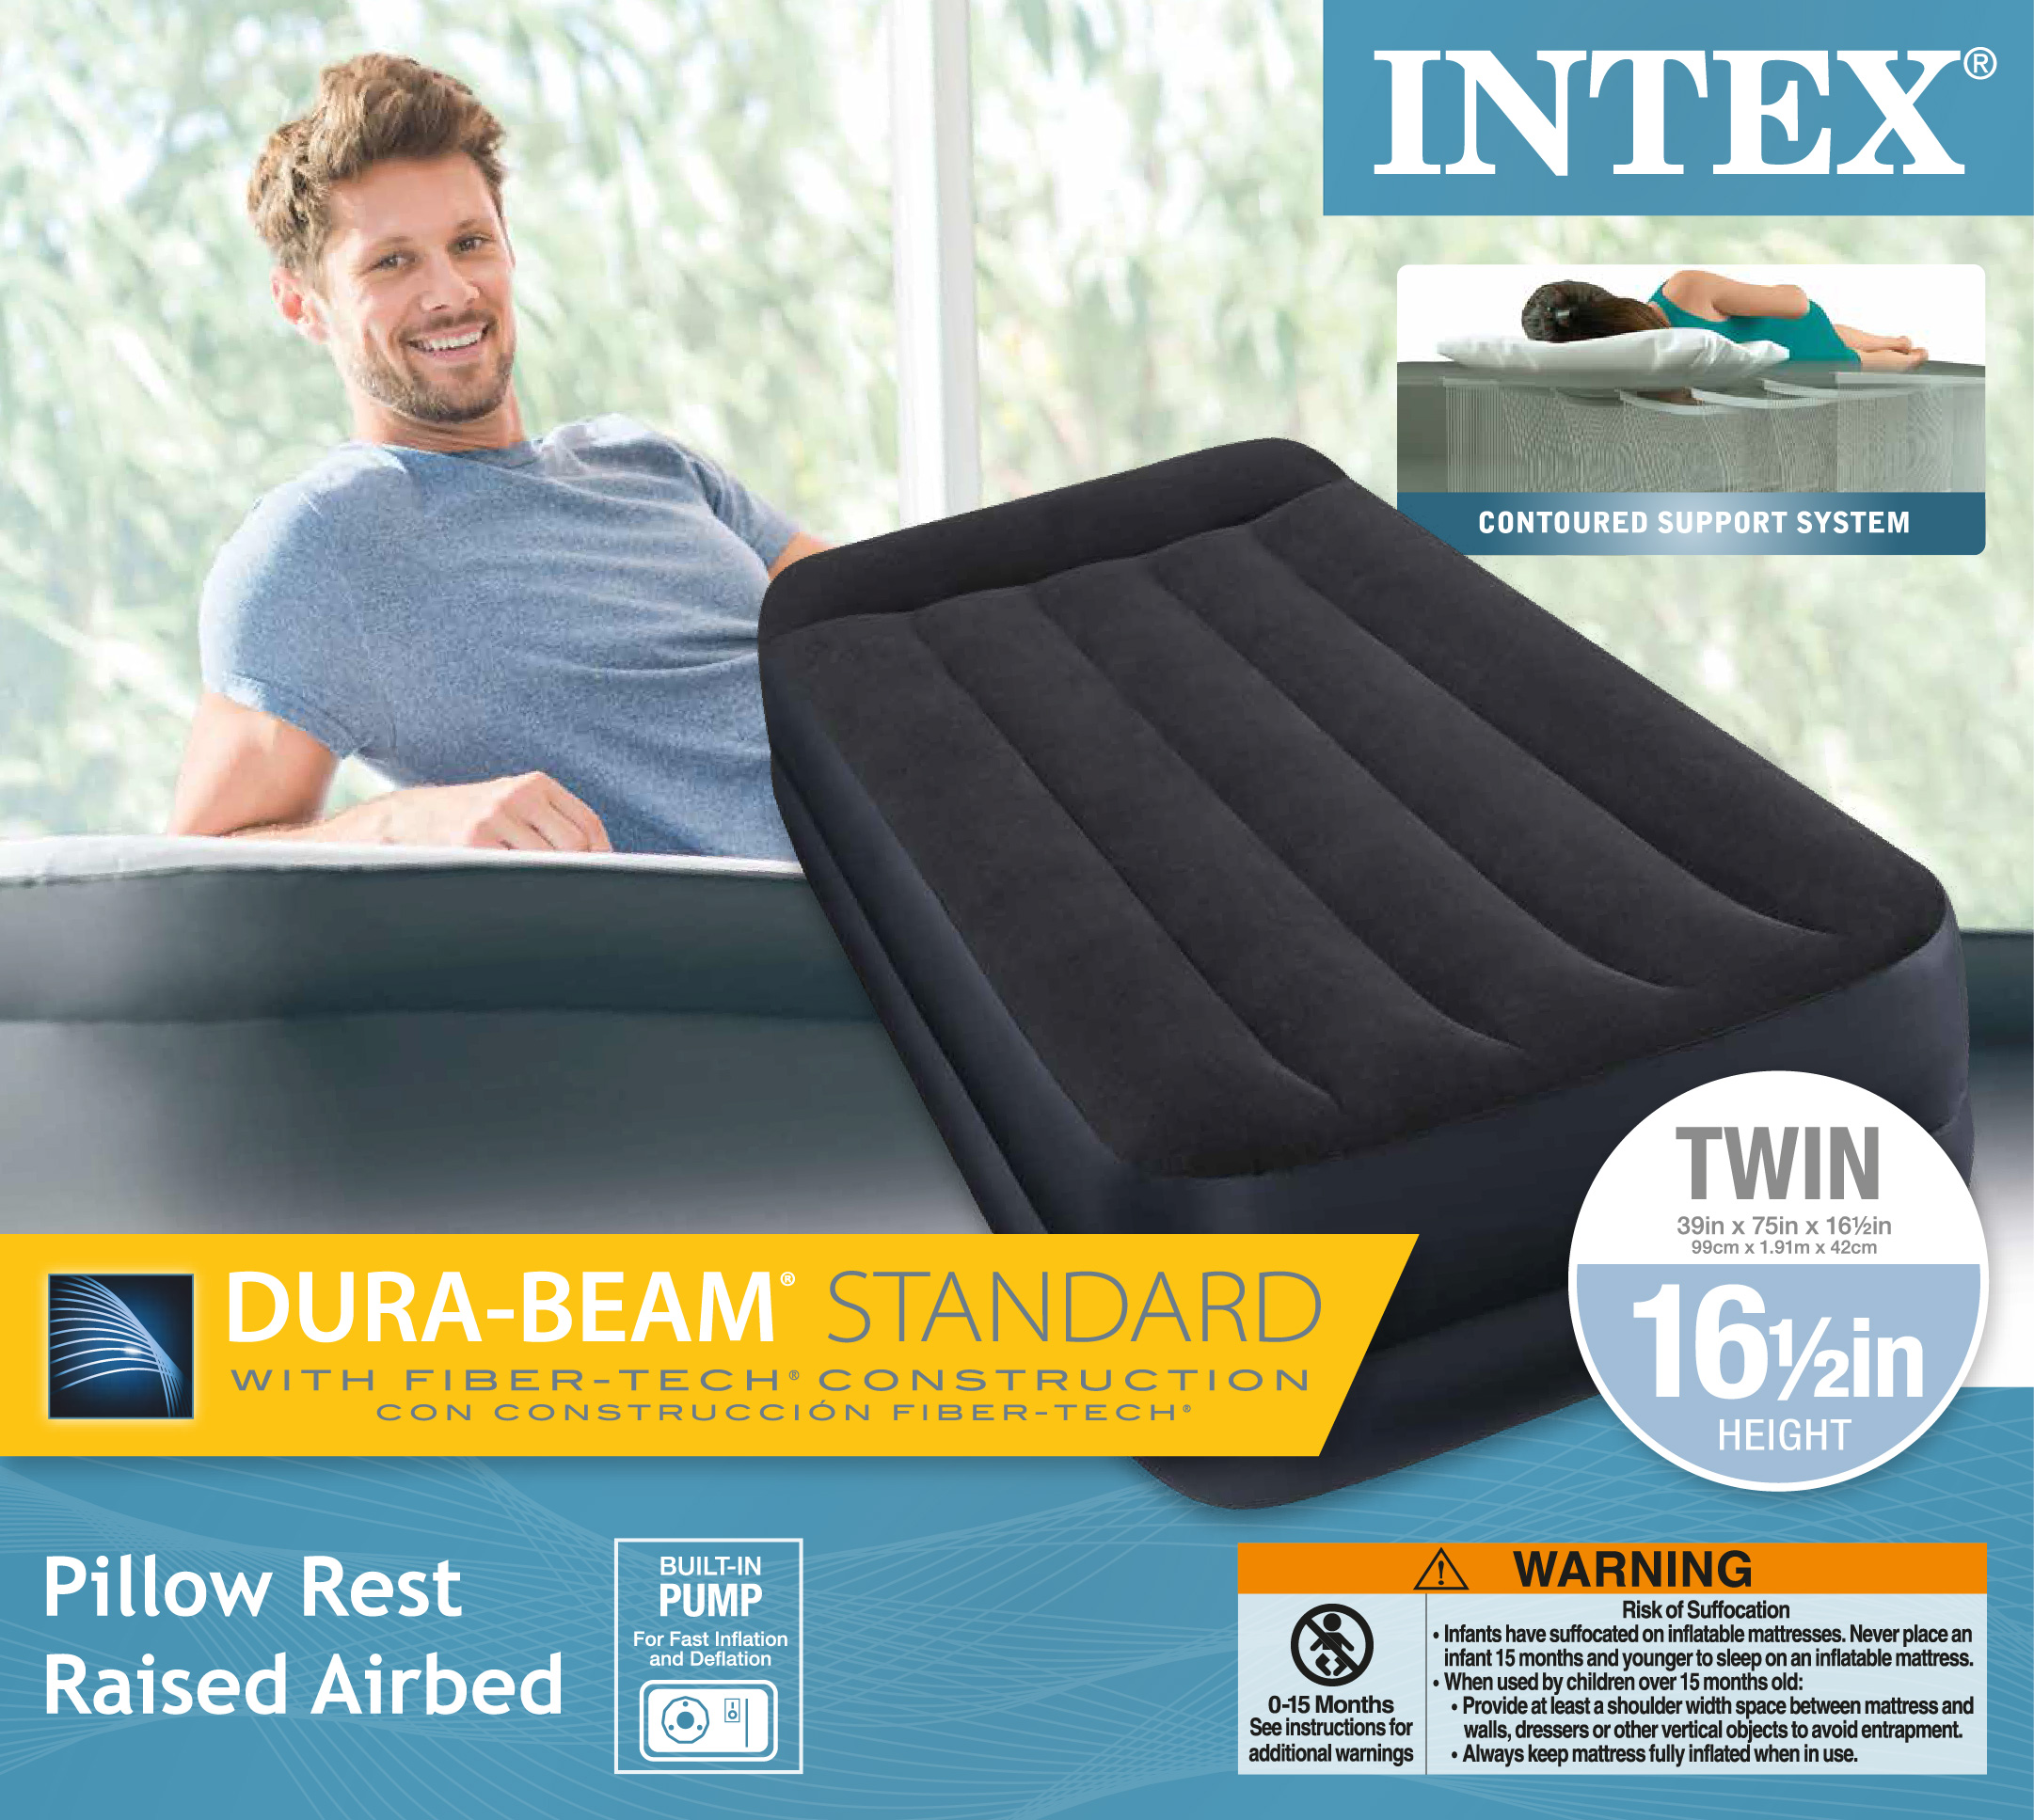 Intex Twin Pillow Rest Fiber Tech Airbed Air Mattress Bed